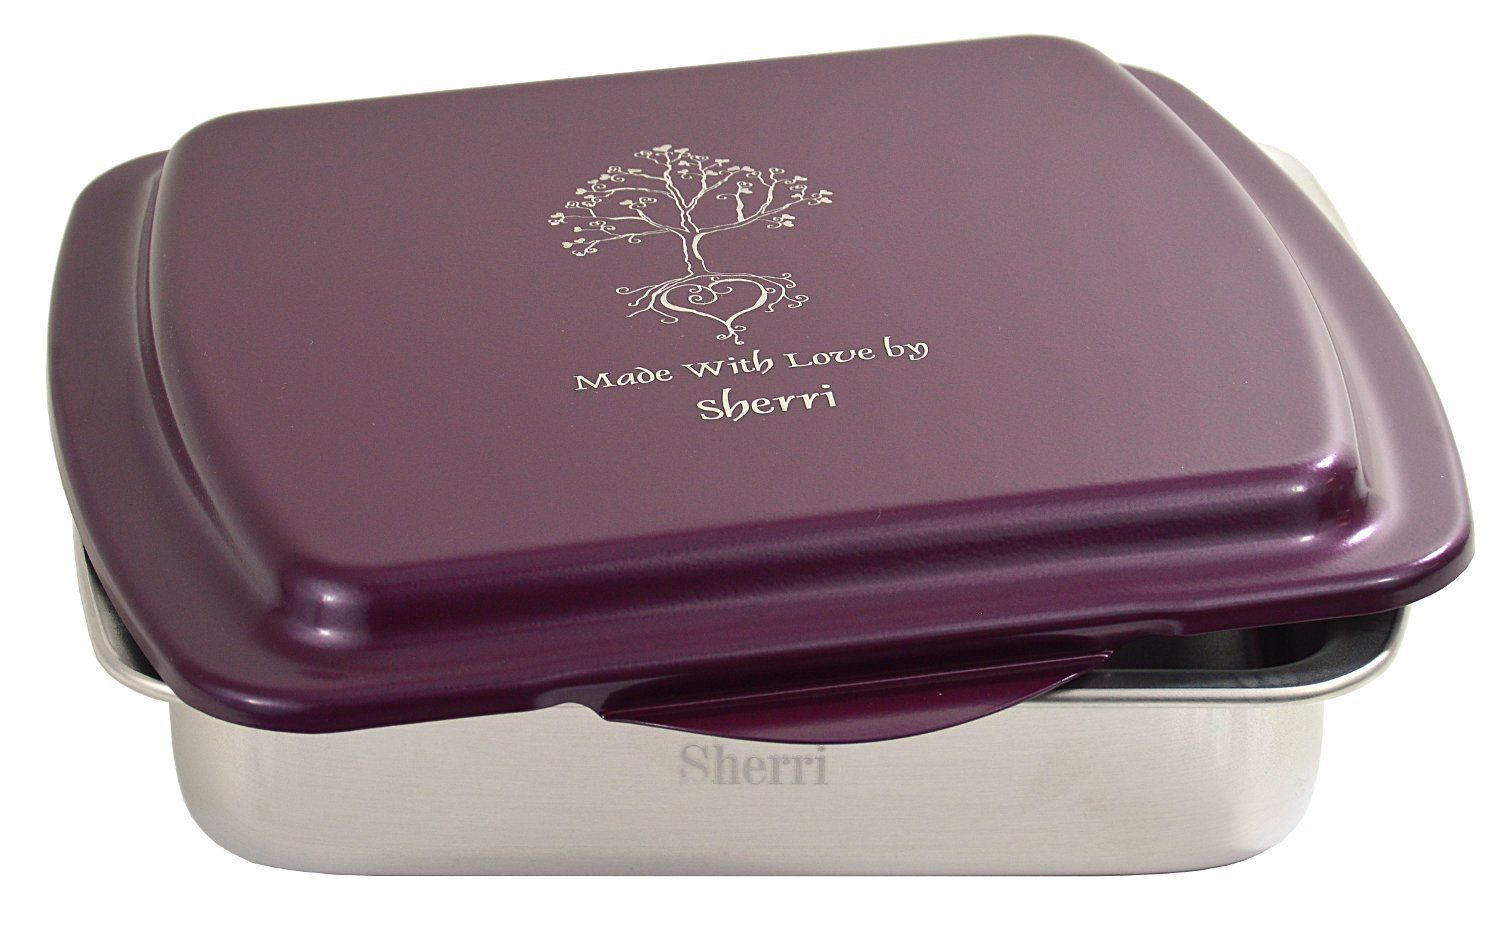 Beautiful personalized 9 x 9 cake pan and laser engraved